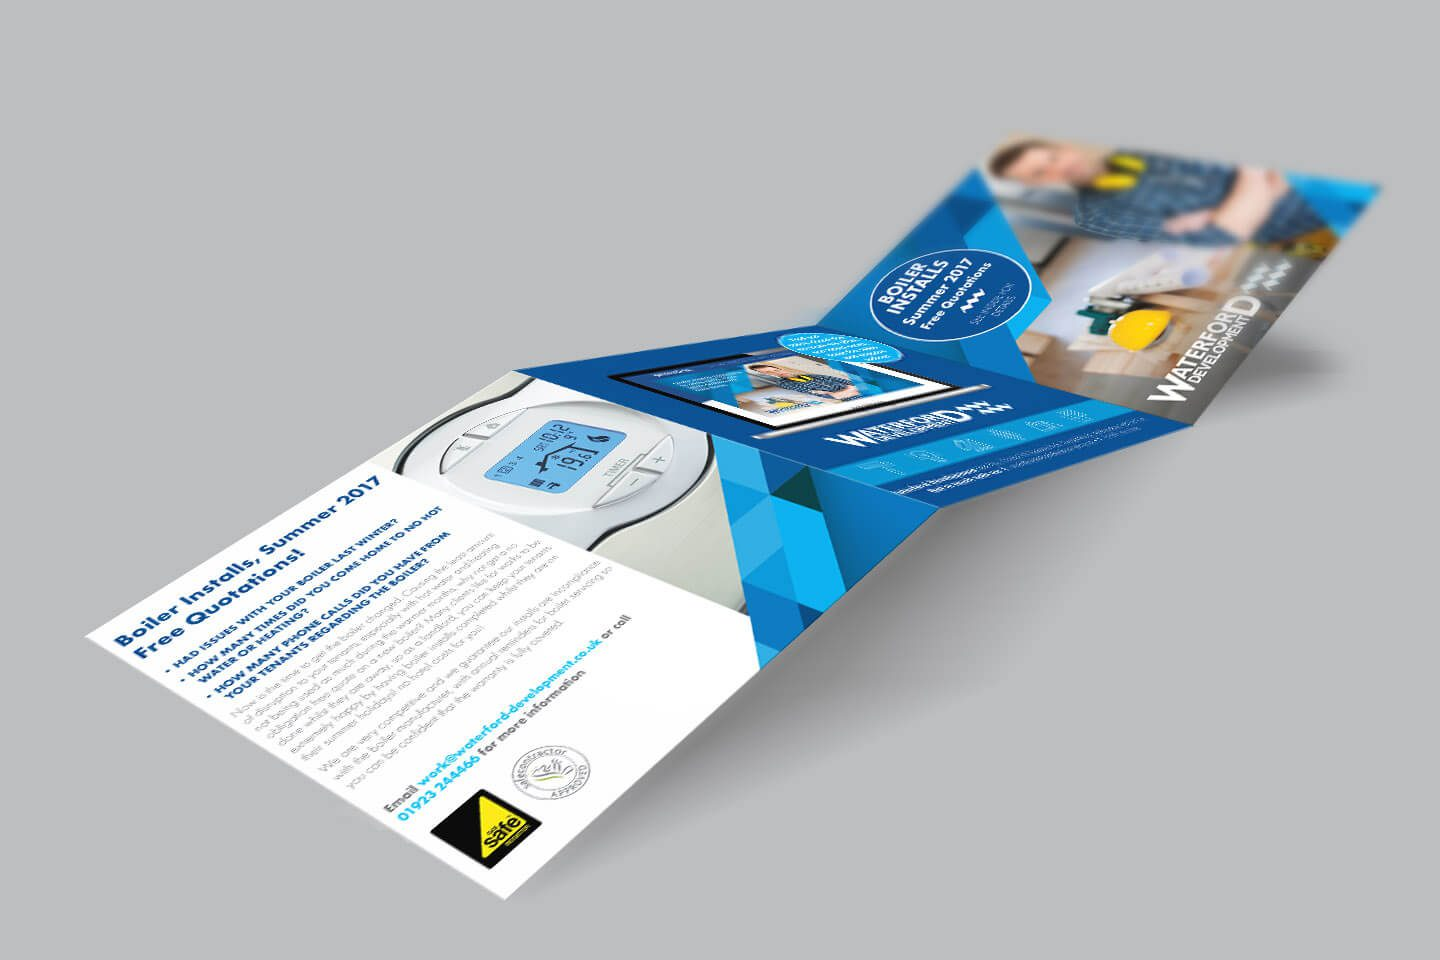 Waterford Case Study Promotional leaflet visual